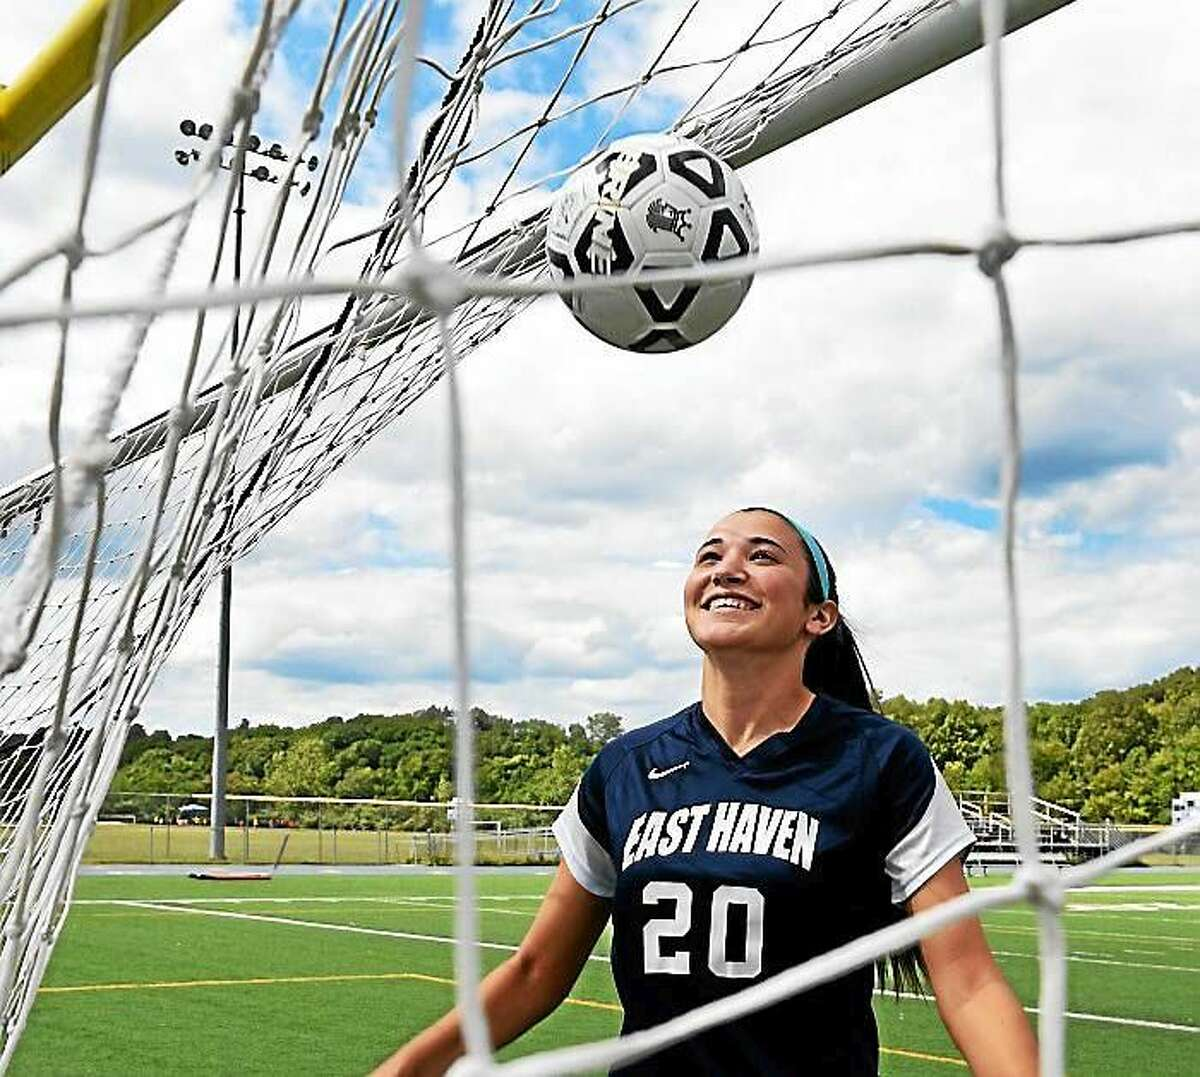 Megan Kikosicki hopes to lead East Haven to its first winning girls soccer season in program history.